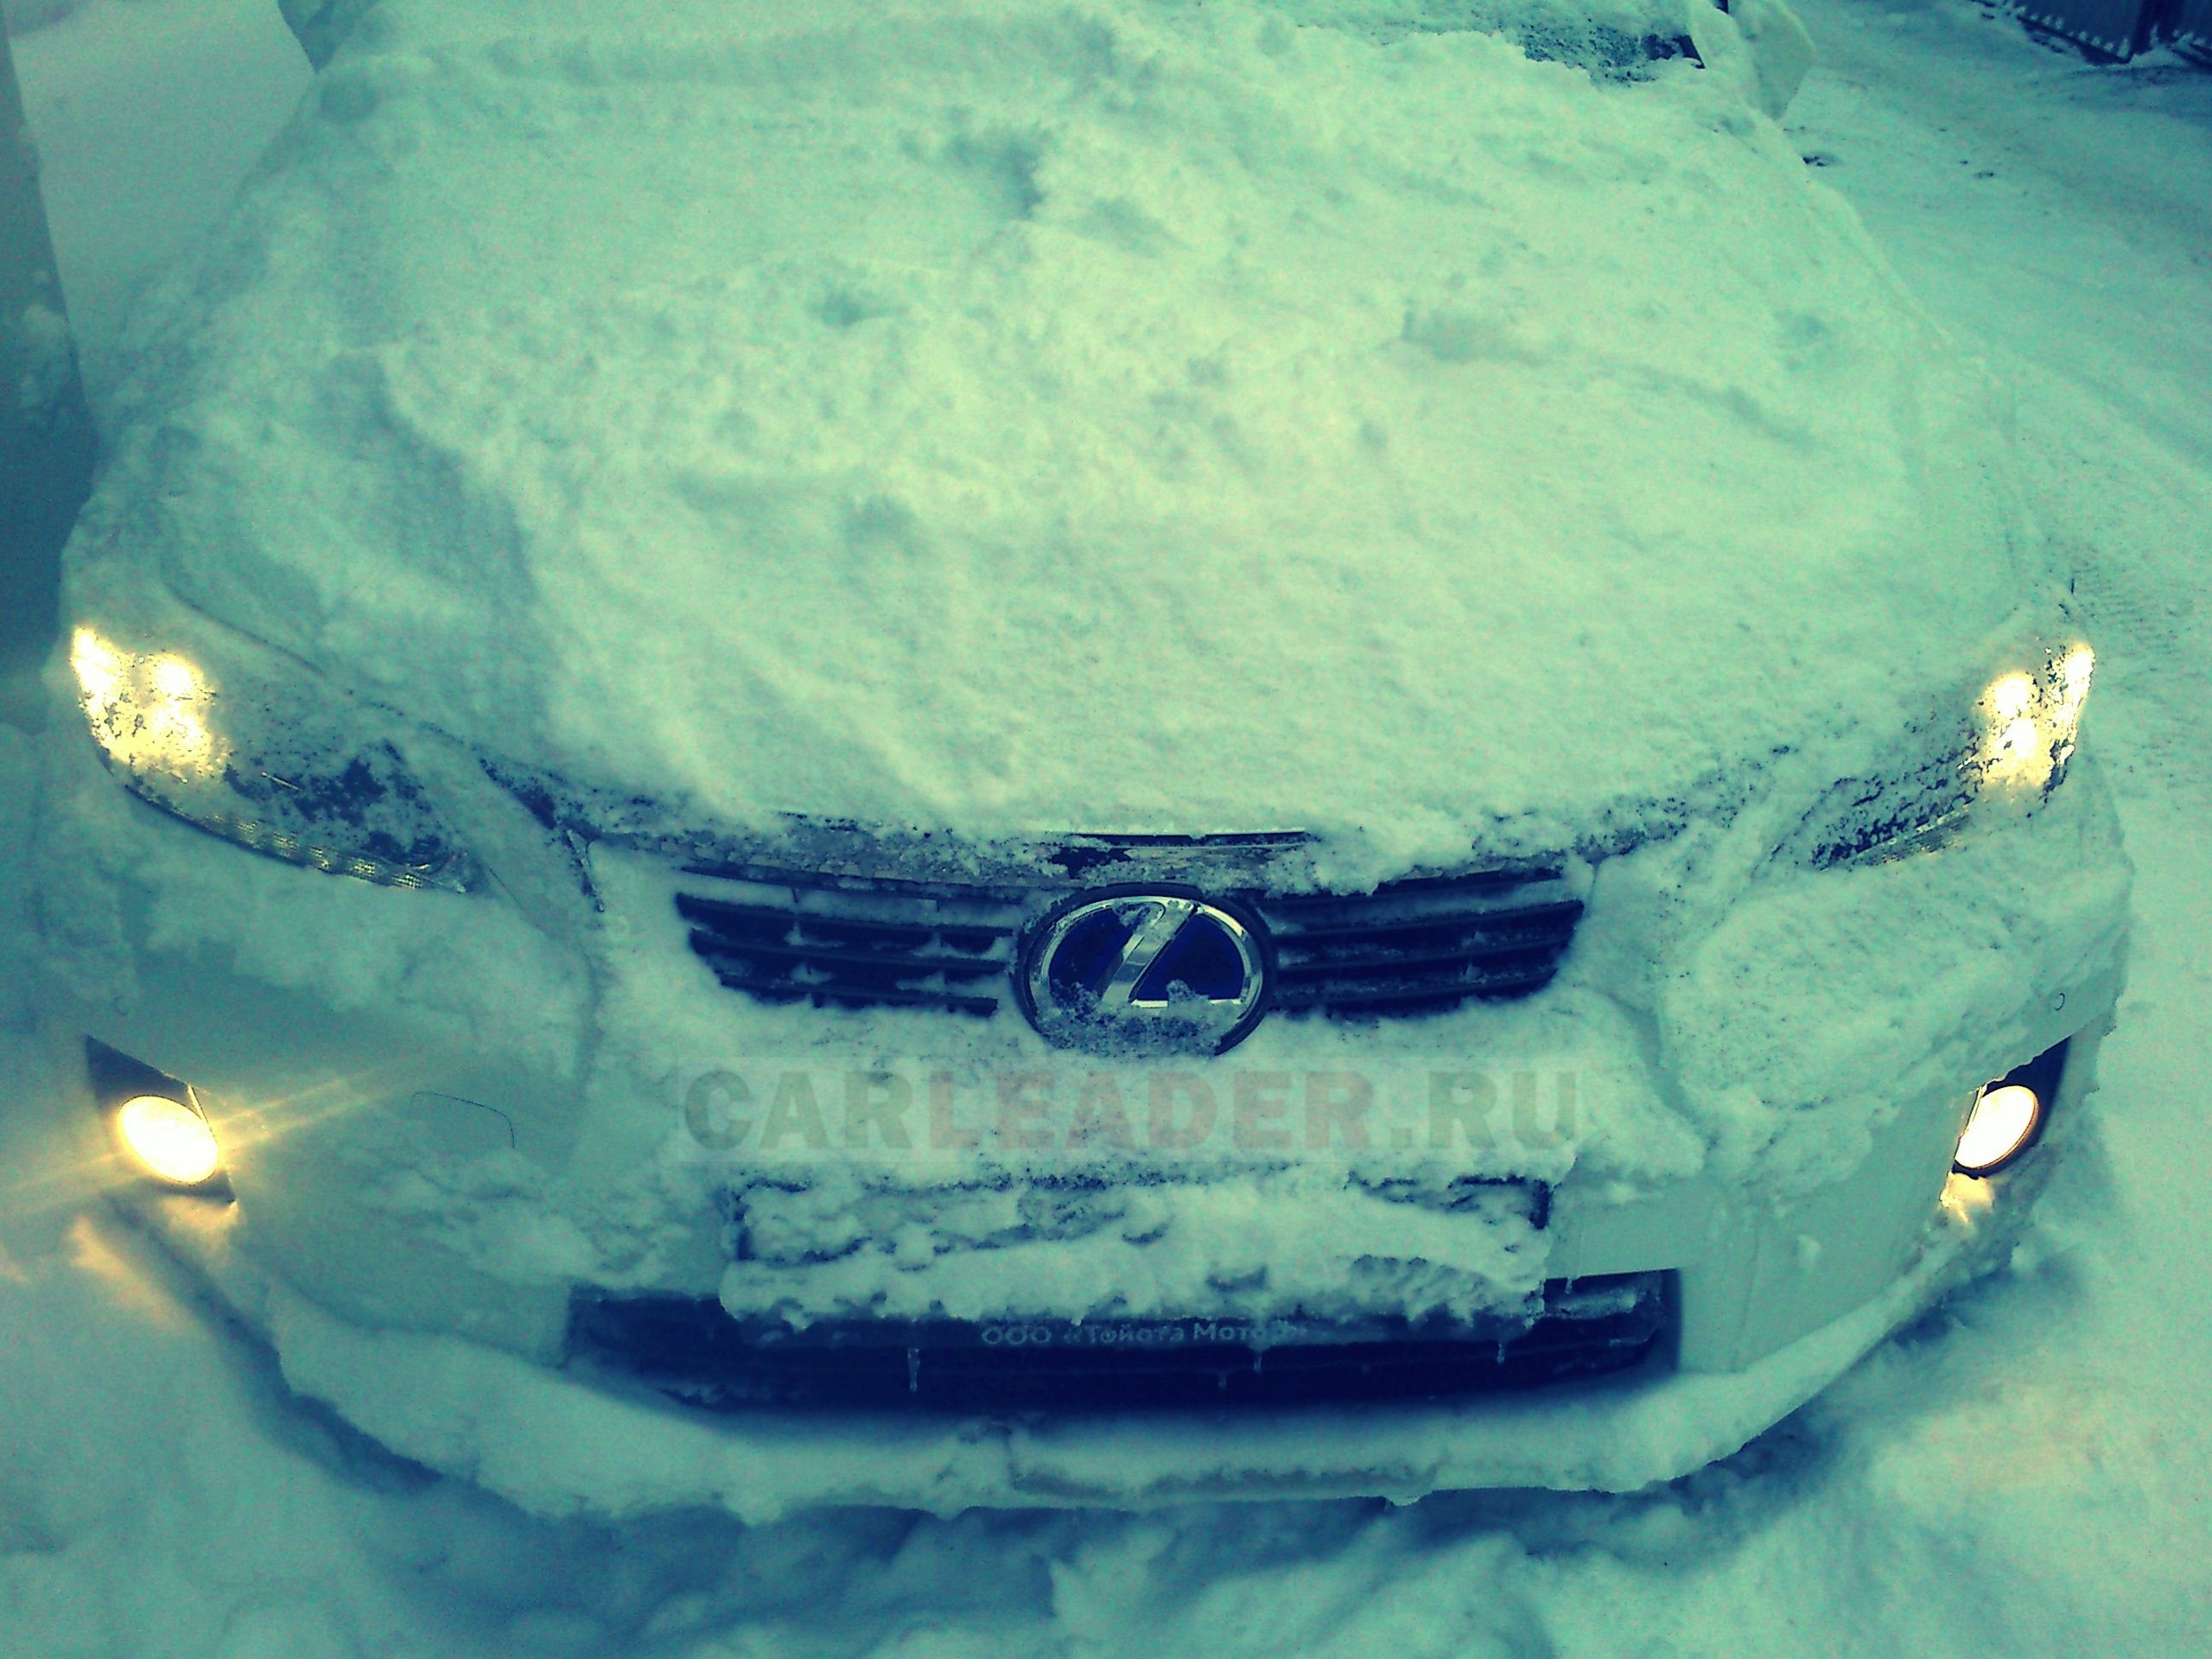 Lexus at russian winter